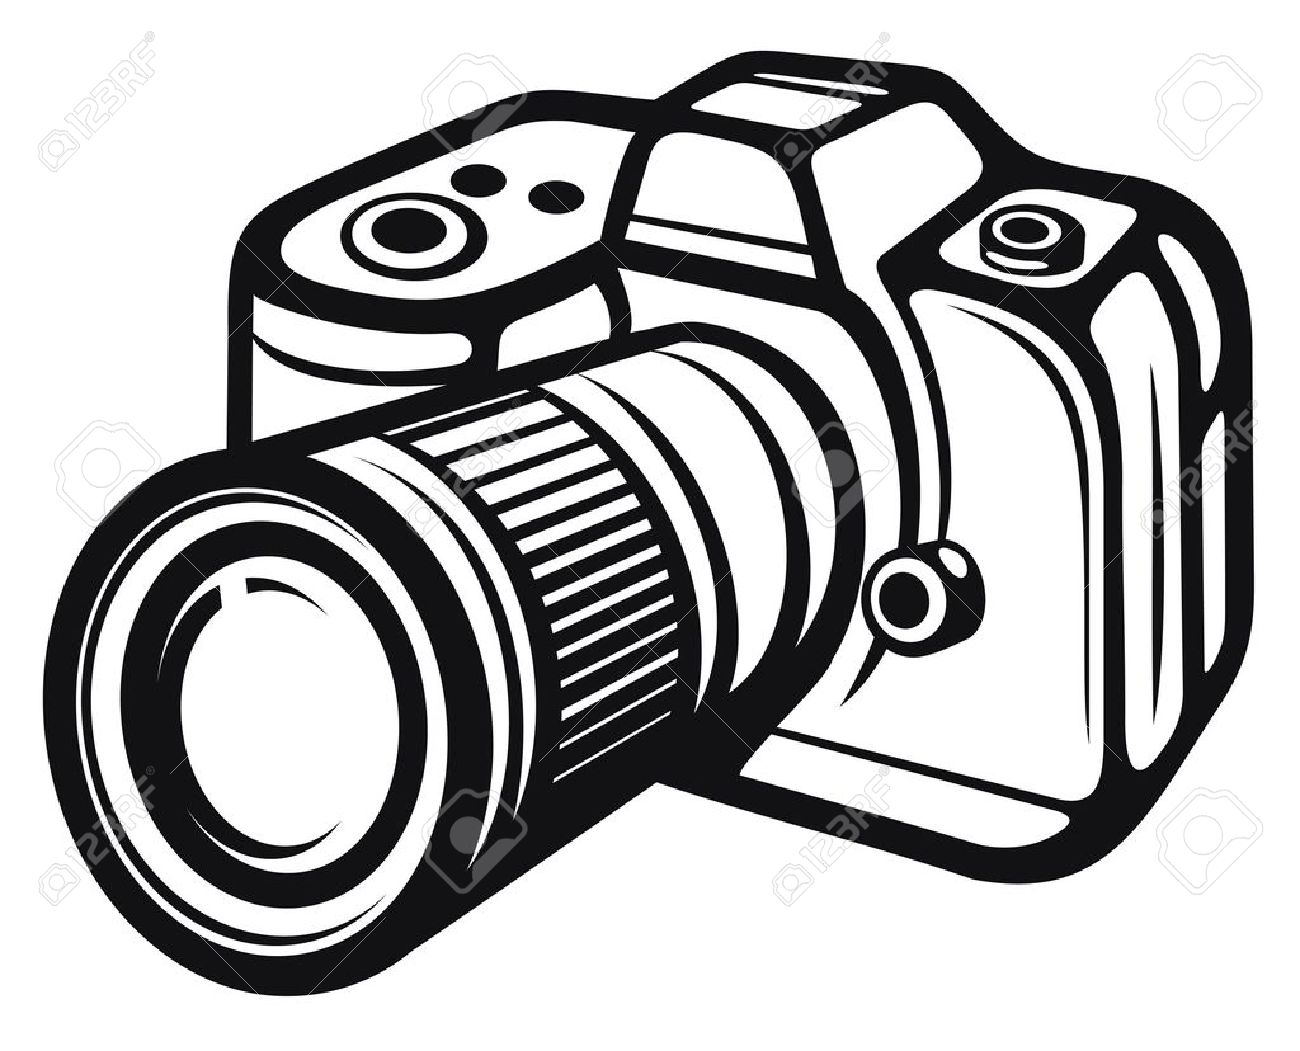 hight resolution of 1300x1051 photography clipart digital camera